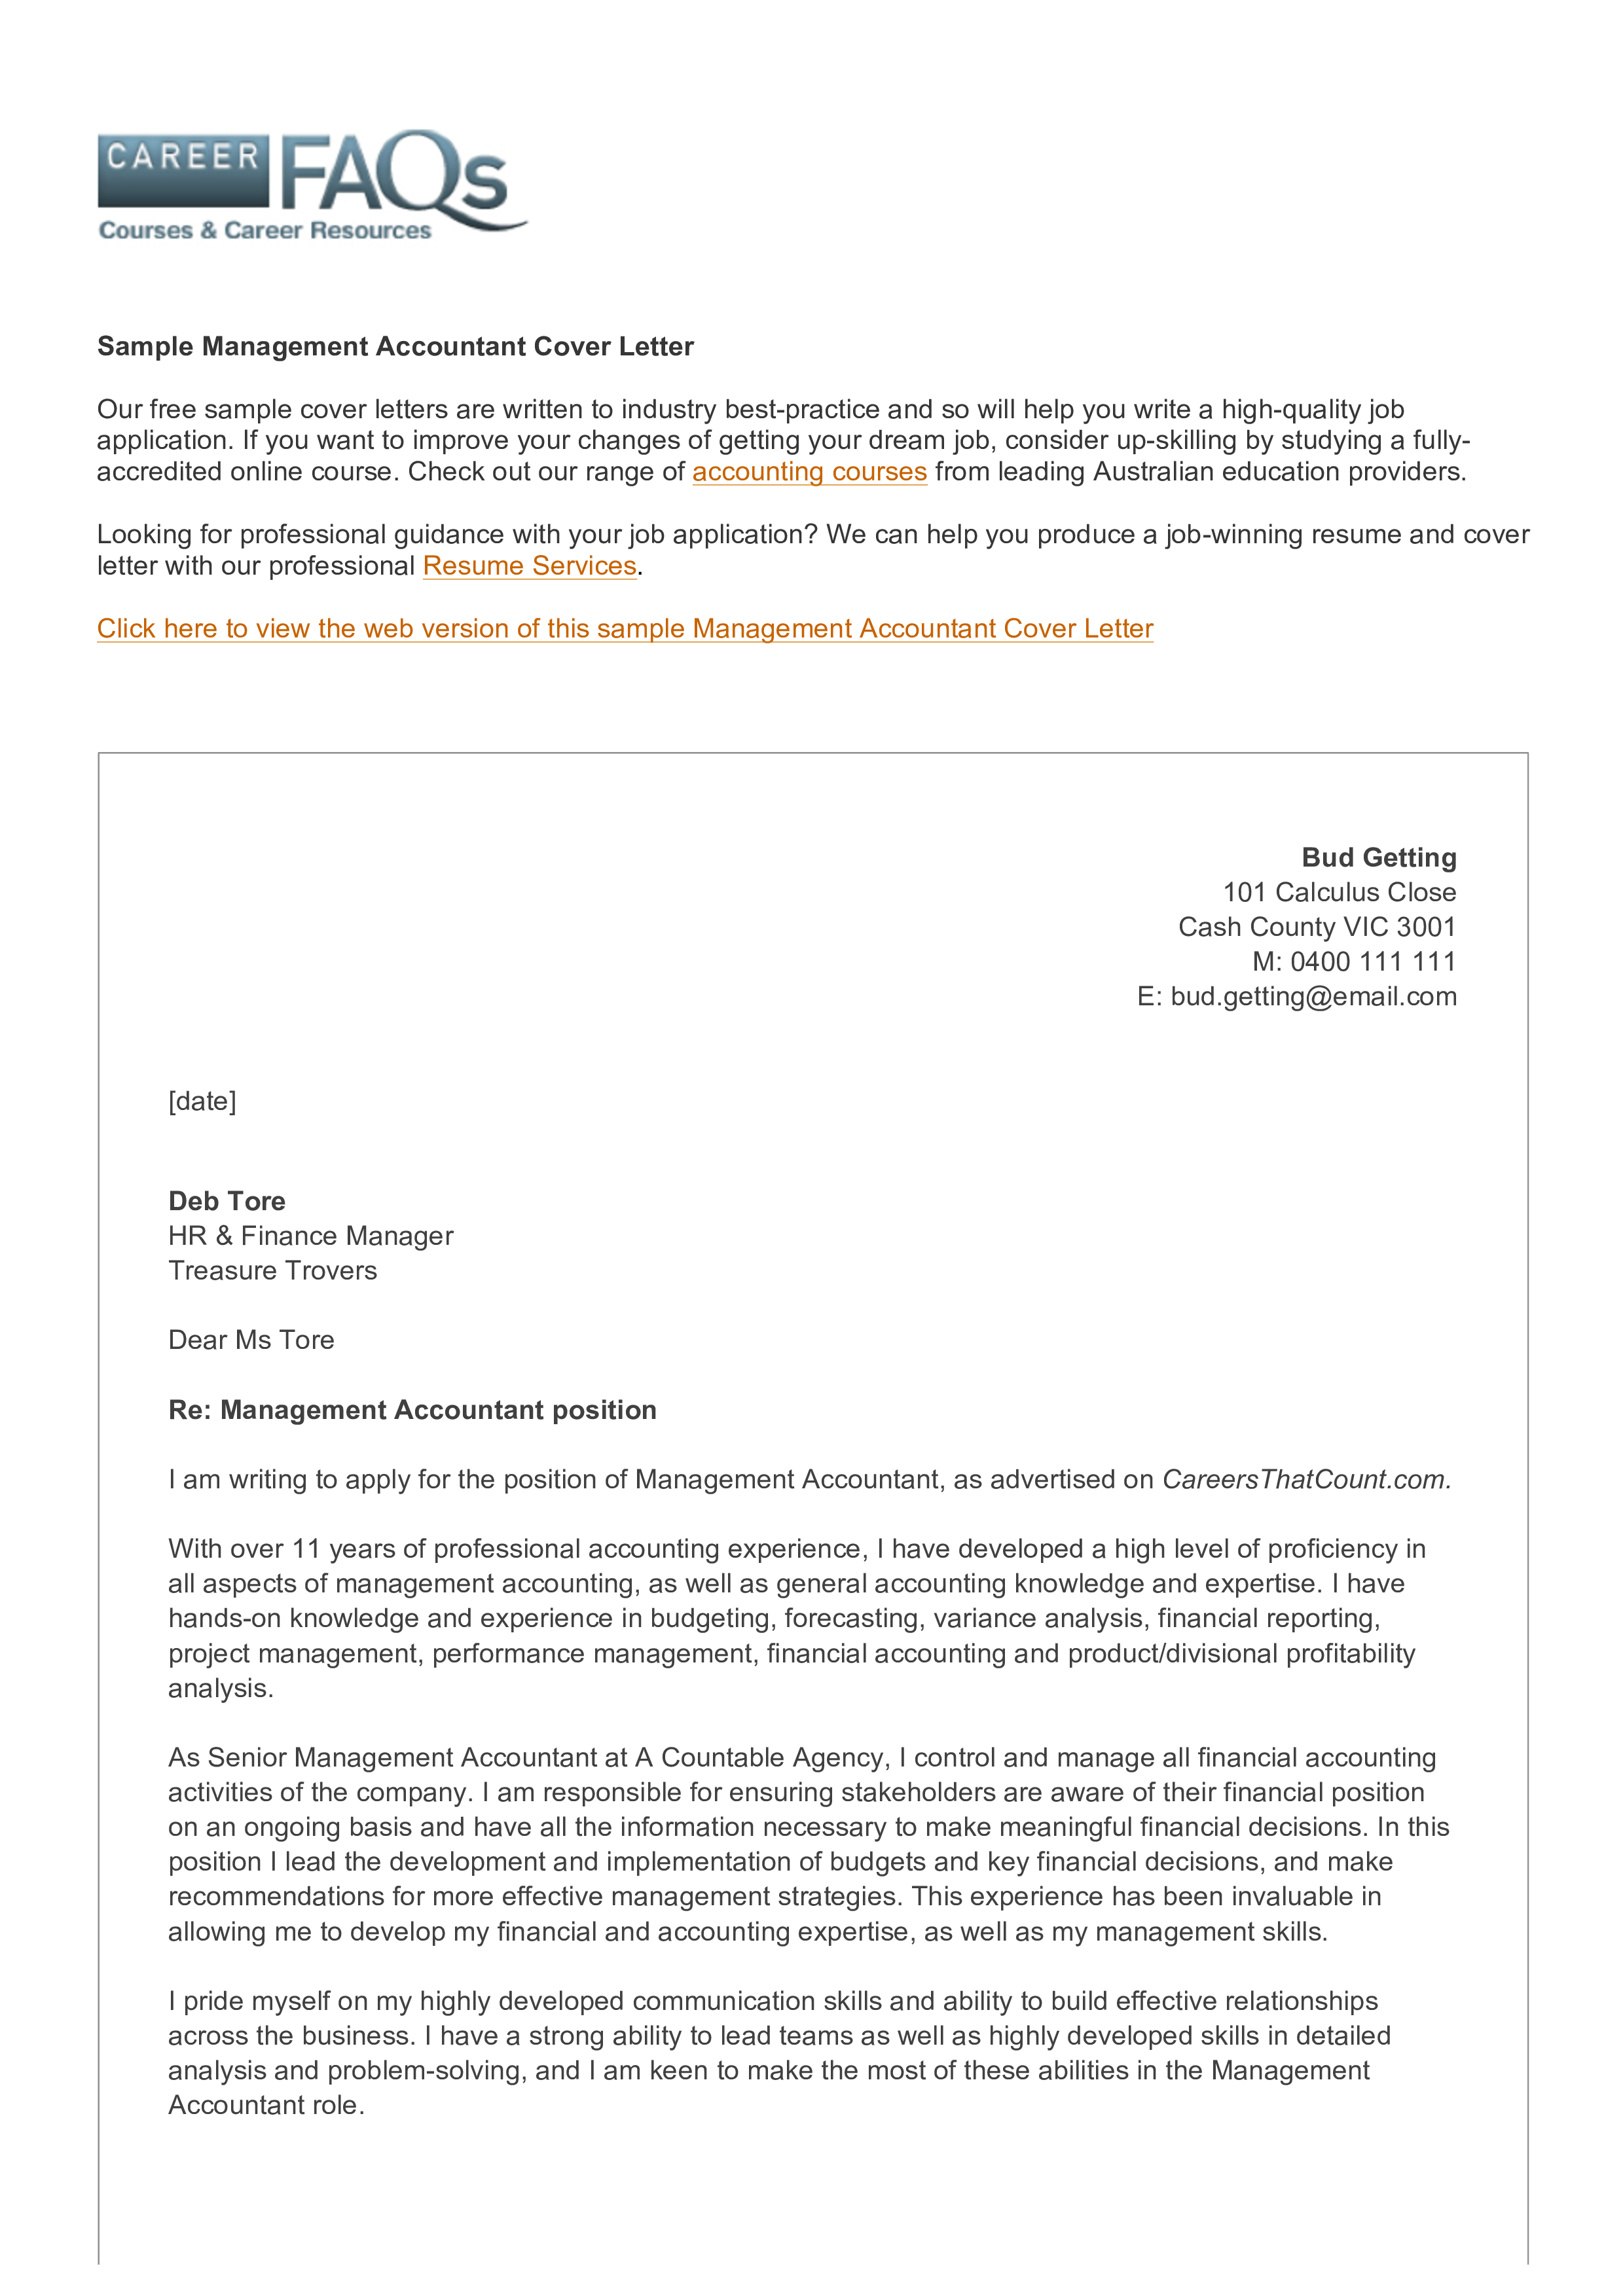 Management Accounting Position Cover Letter main image